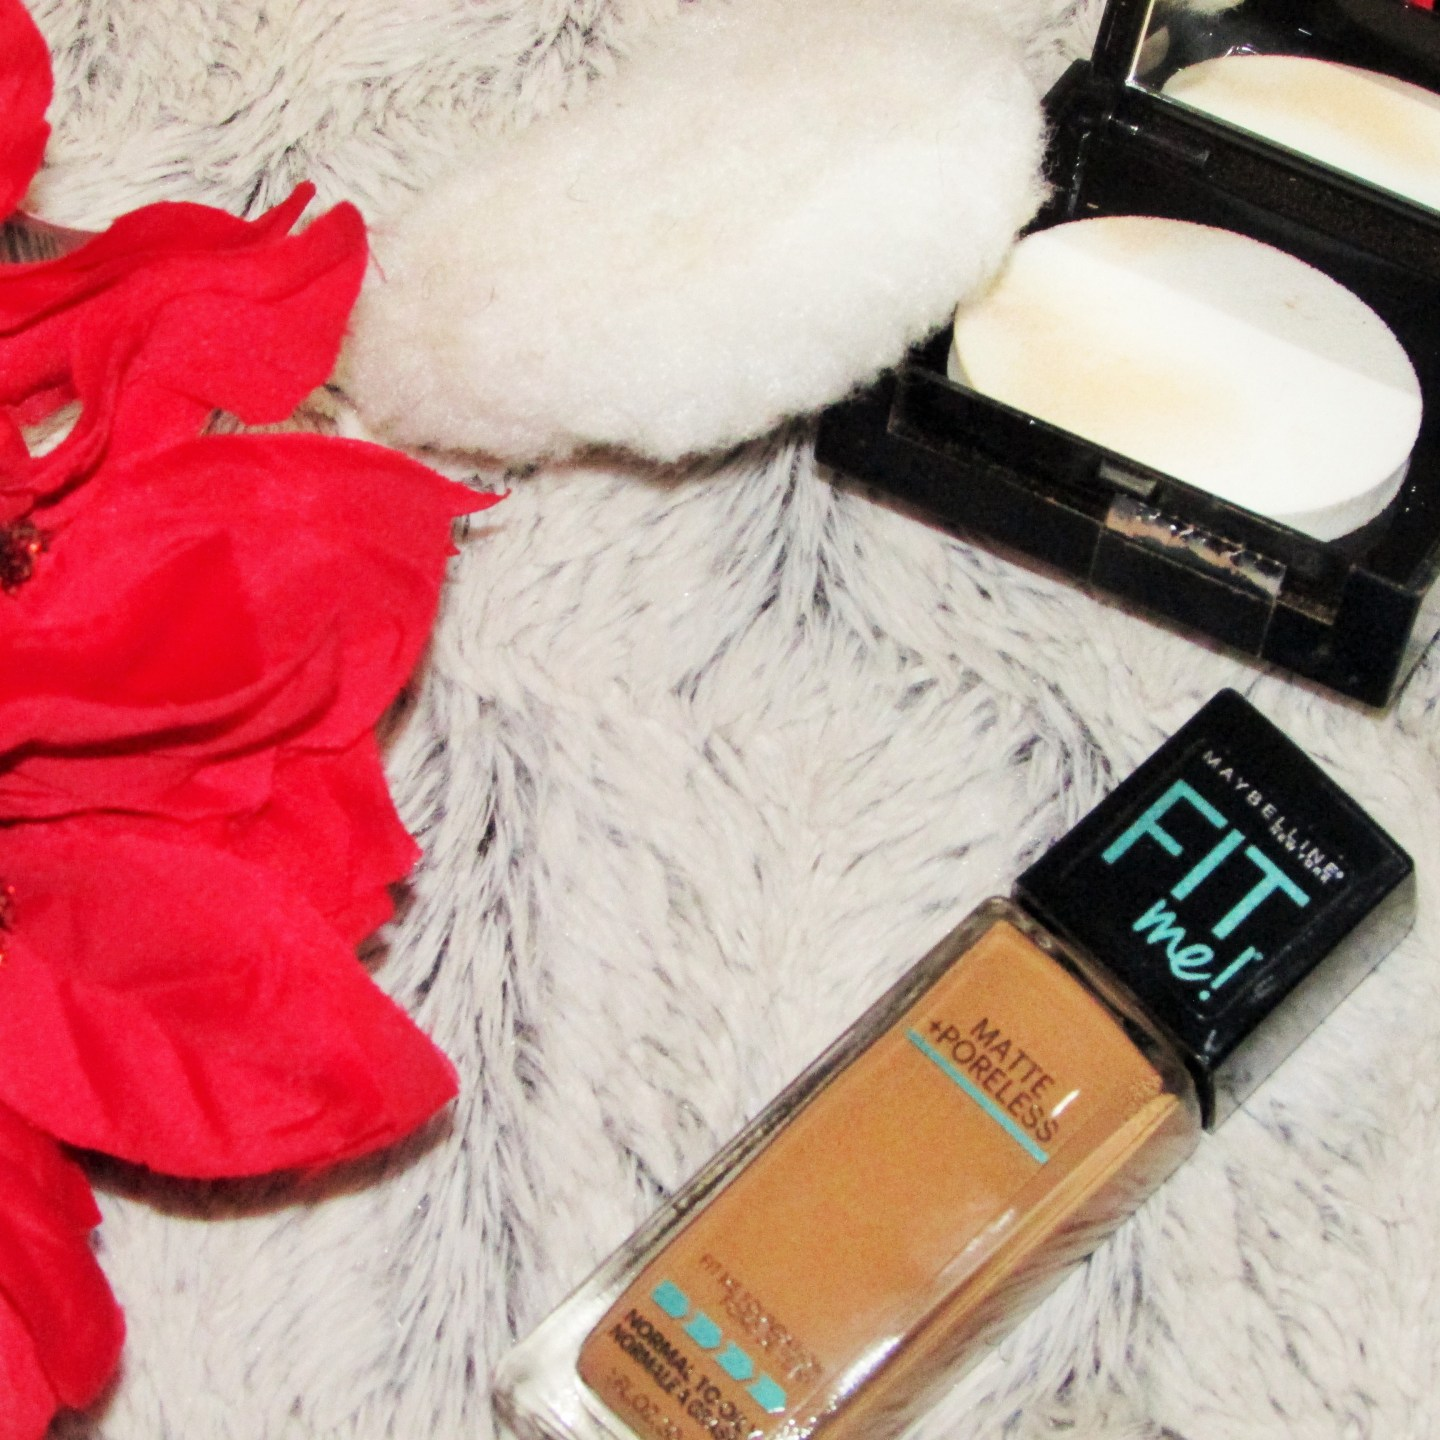 My Go-To Drugstore Foundation